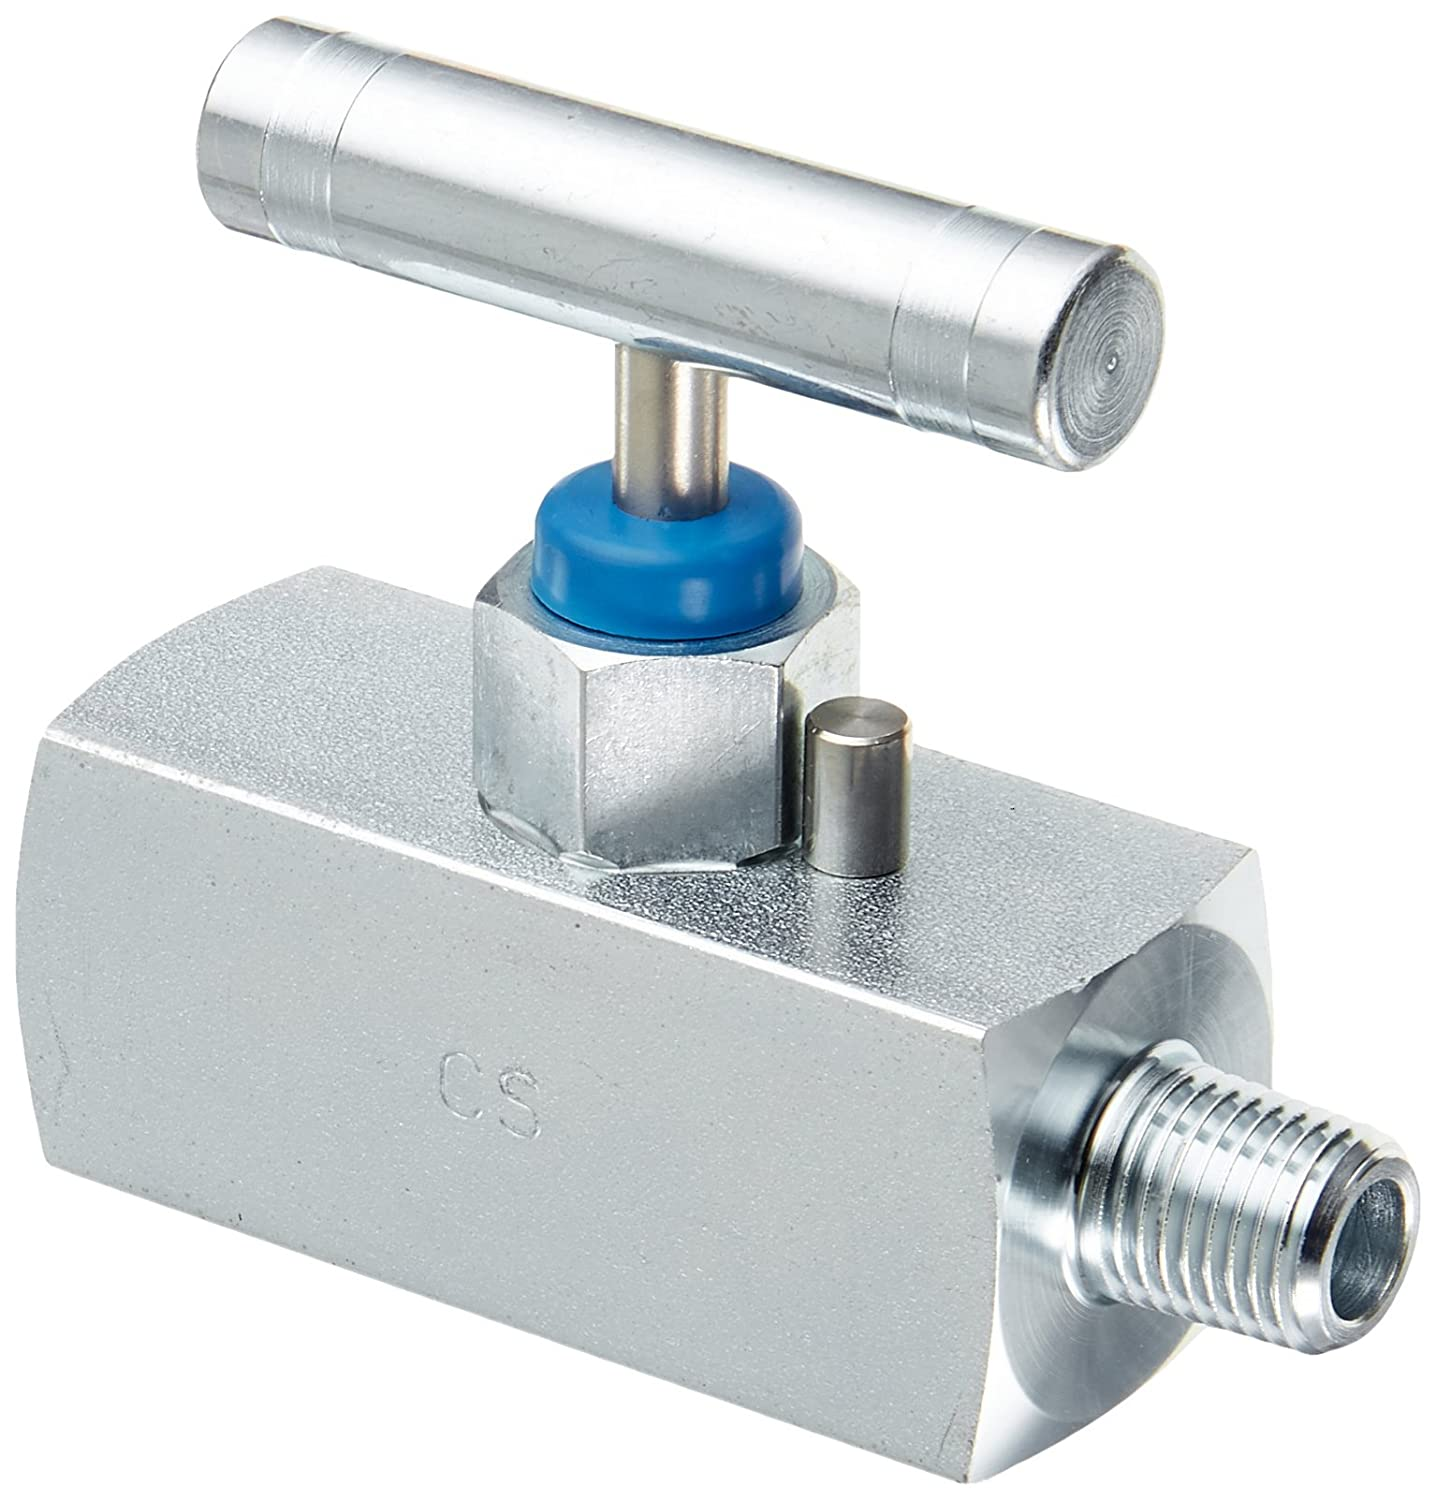 PIC Gauge NVL-CS-1//4-HS180-MXF Carbon Steel Large Body Straight Needle Valve with Hydraulic Service 10000 psi Pressure 1//4 Male NPT x 1//4 Female NPT Connection Size